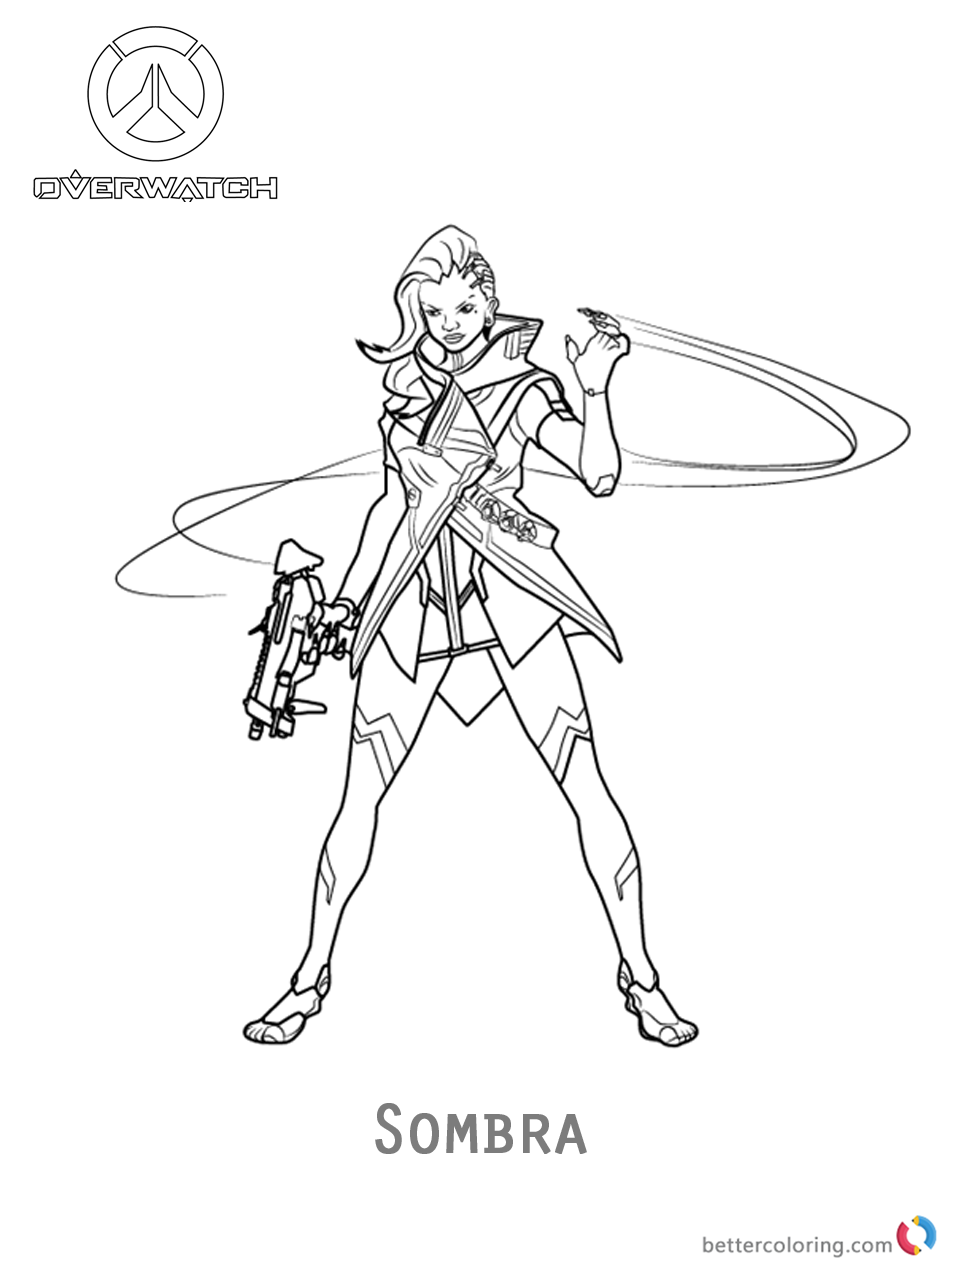 Sombra from Overwatch coloring pages printable